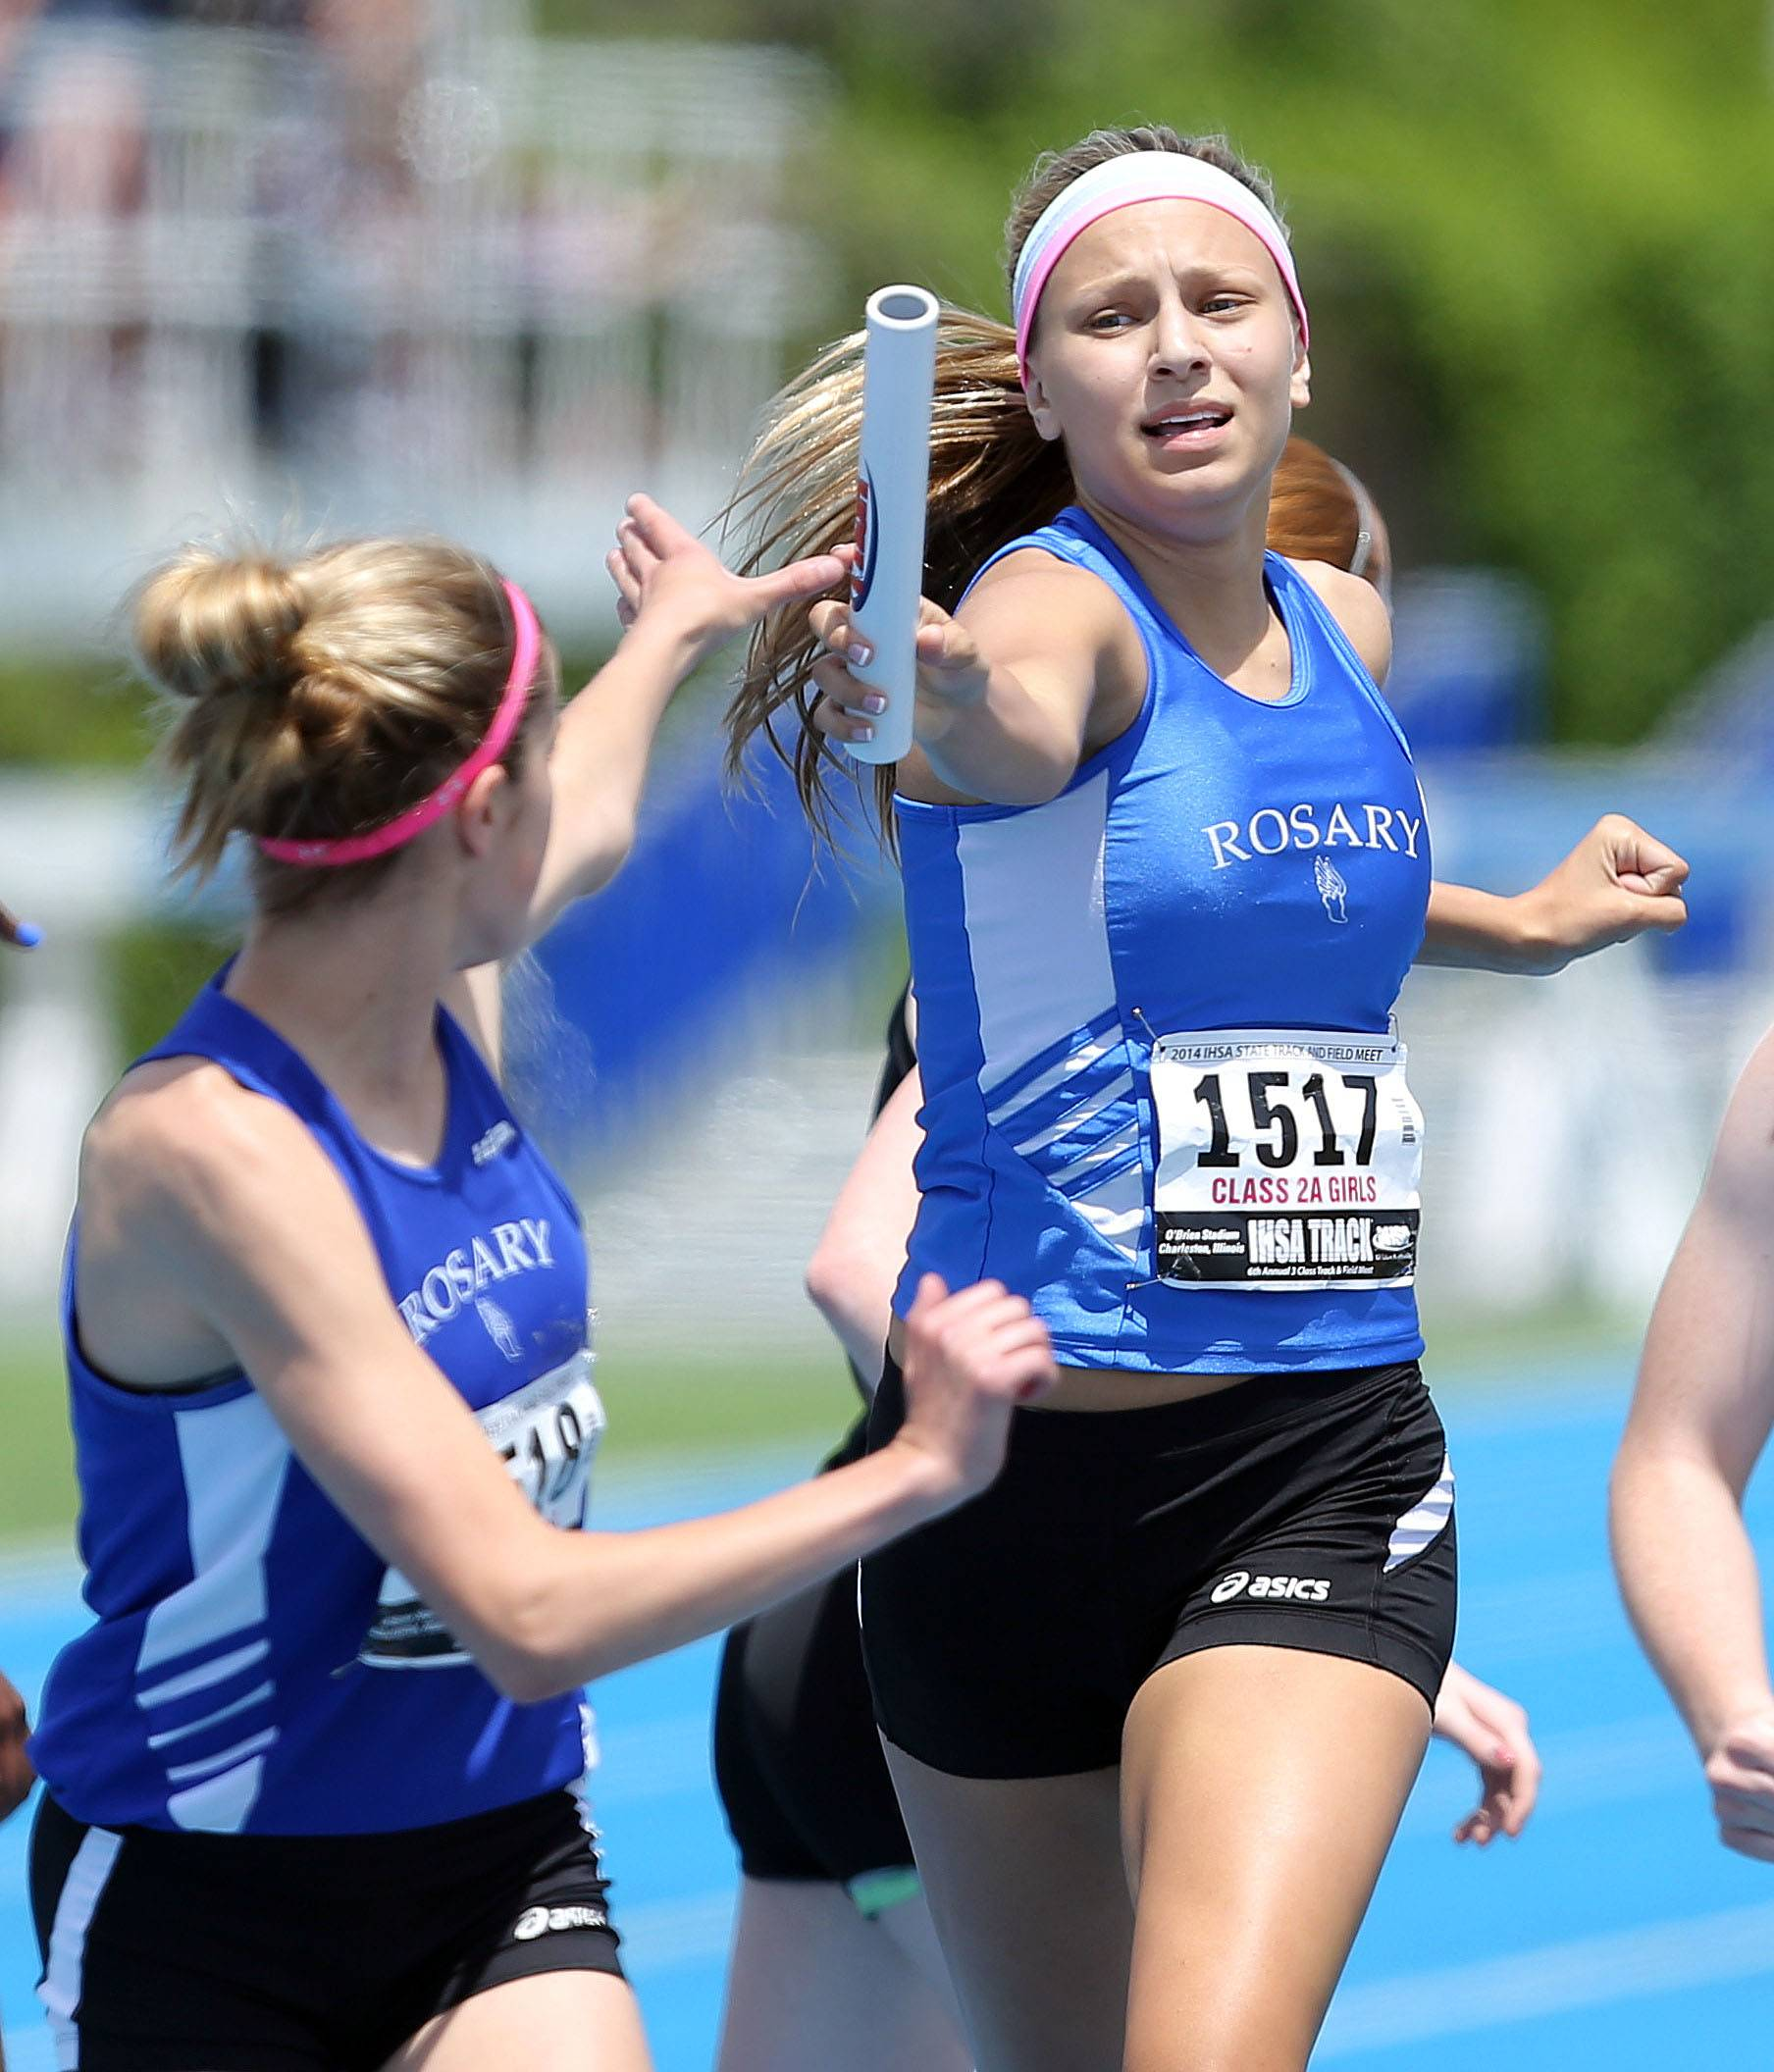 Rosary's Shea Vero, left, takes the baton from Molly Stefanski in the 4x400-meter relay during the prelims of the girls track and field state meet at Eastern Illinois University in Charleston Friday.